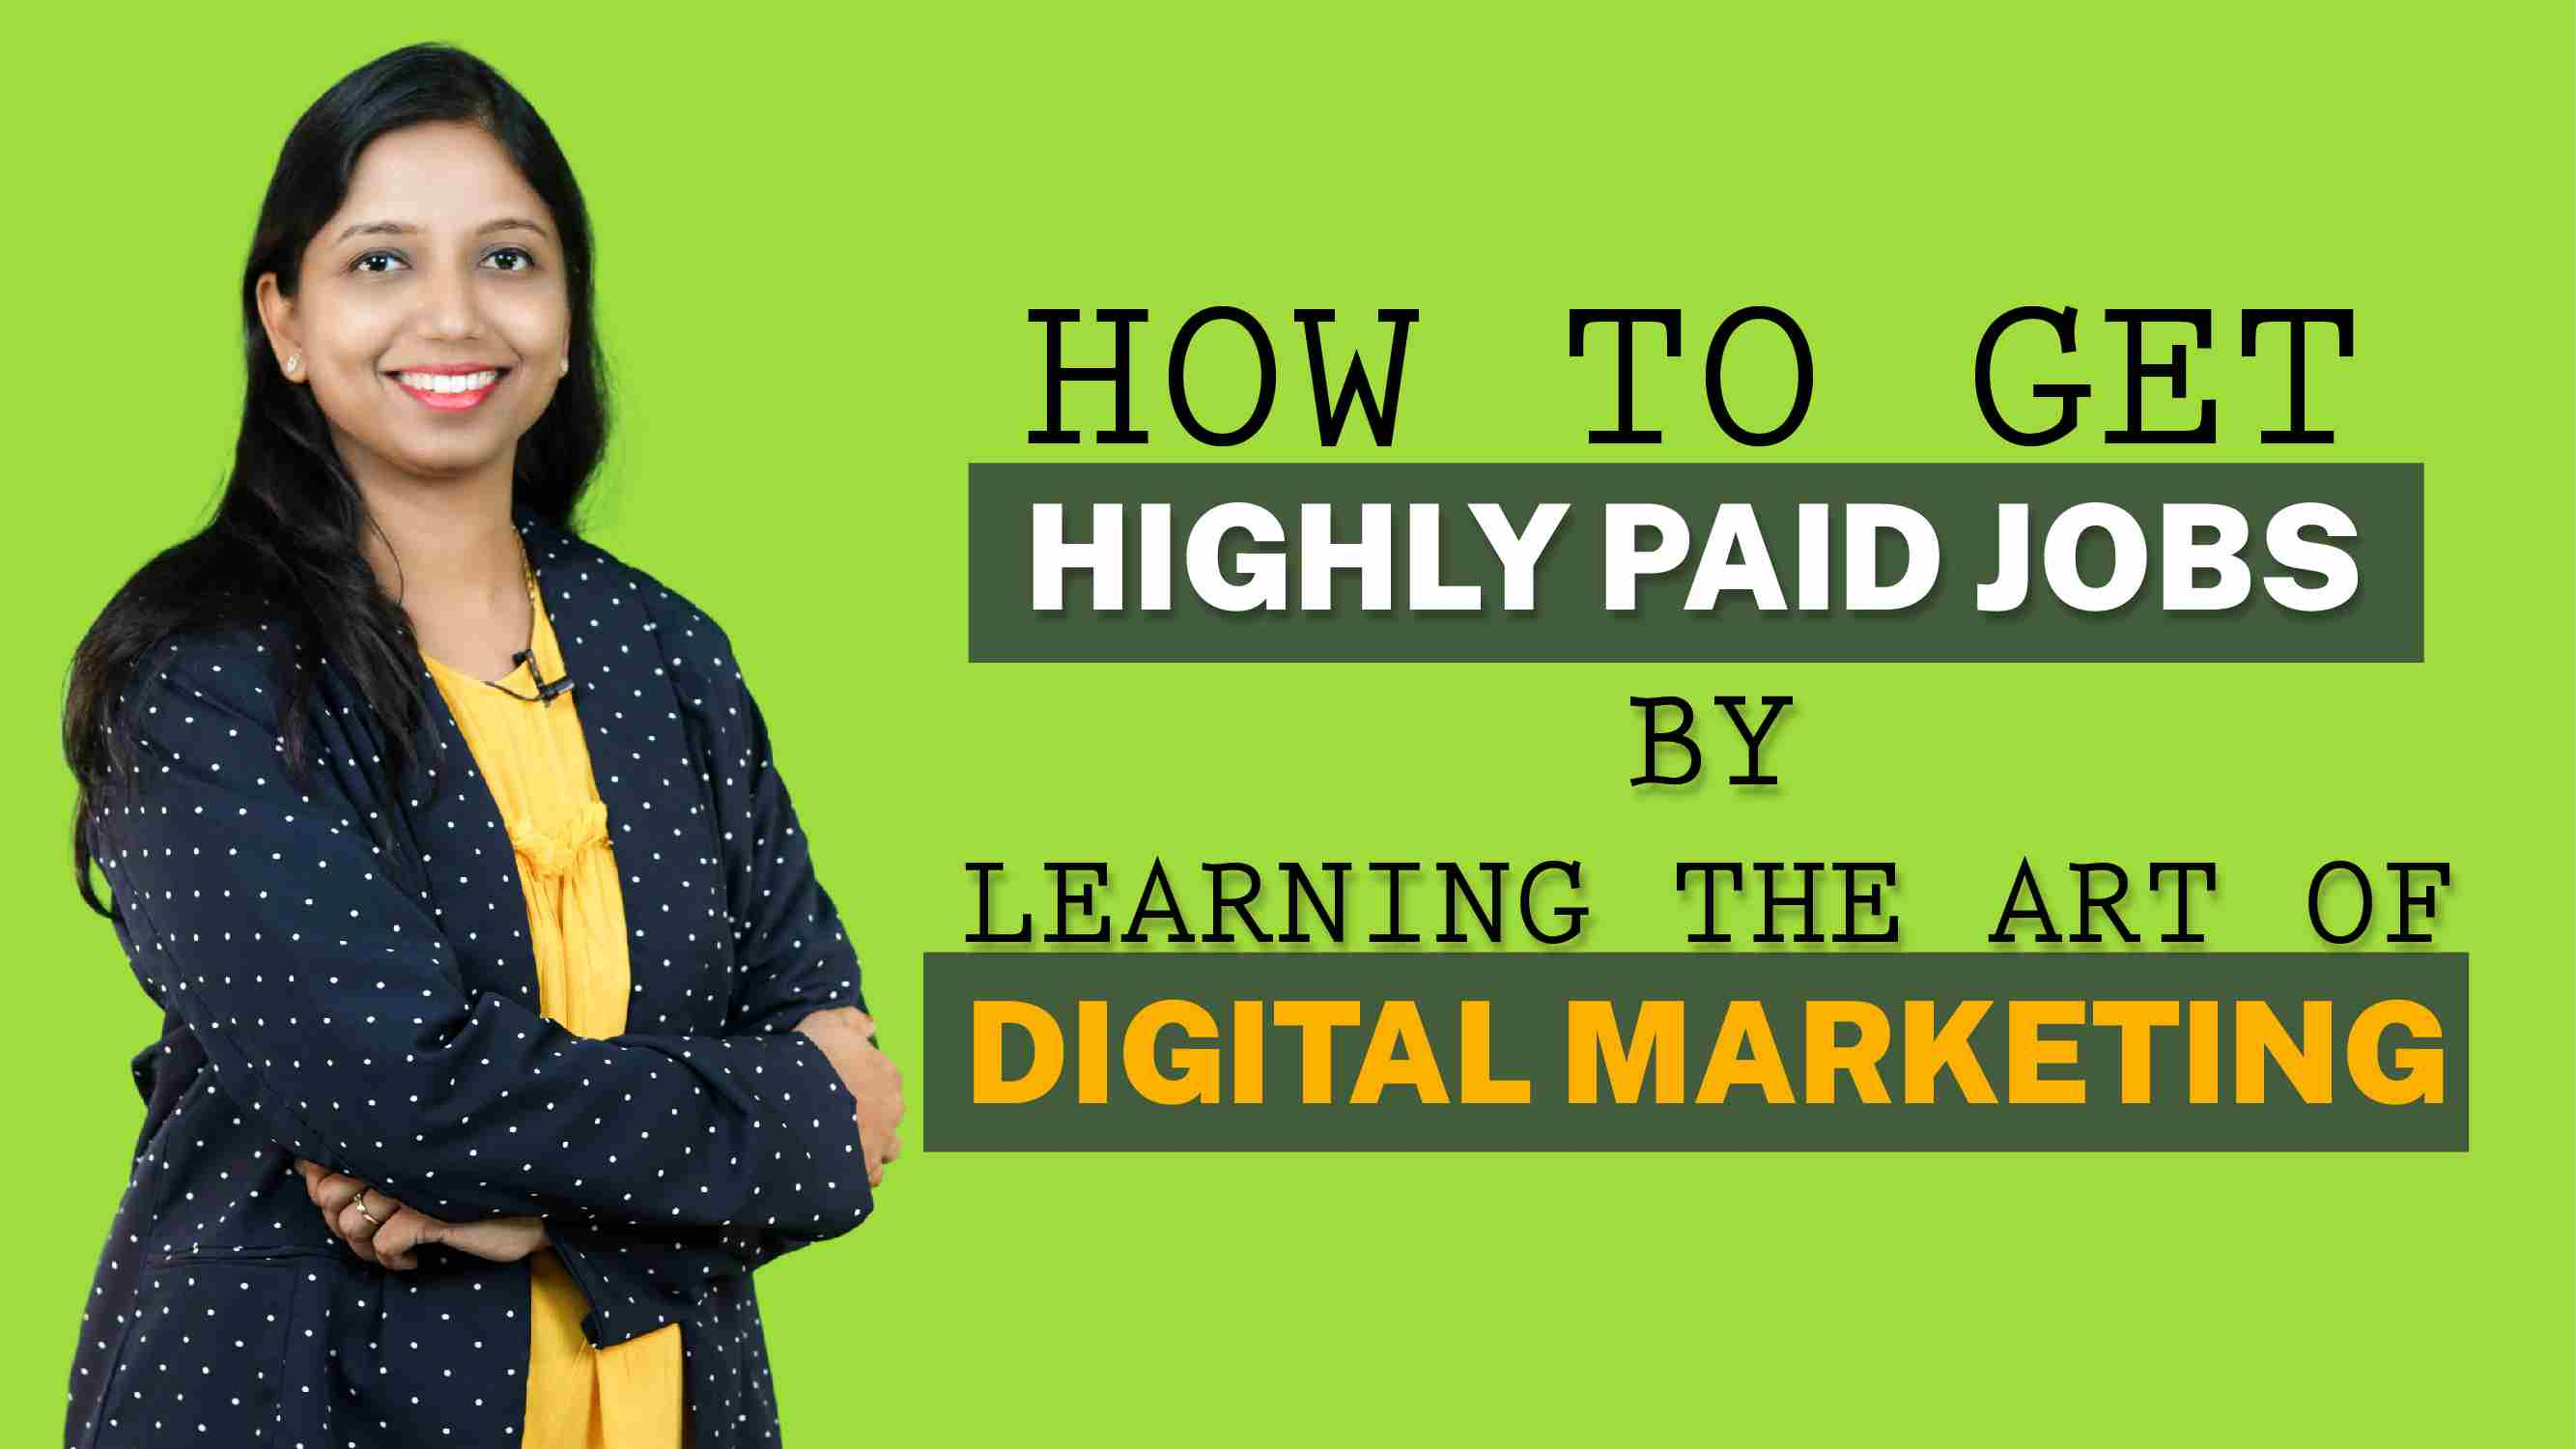 How To Get Highly Paid Job By Learning Digital Marketing Course